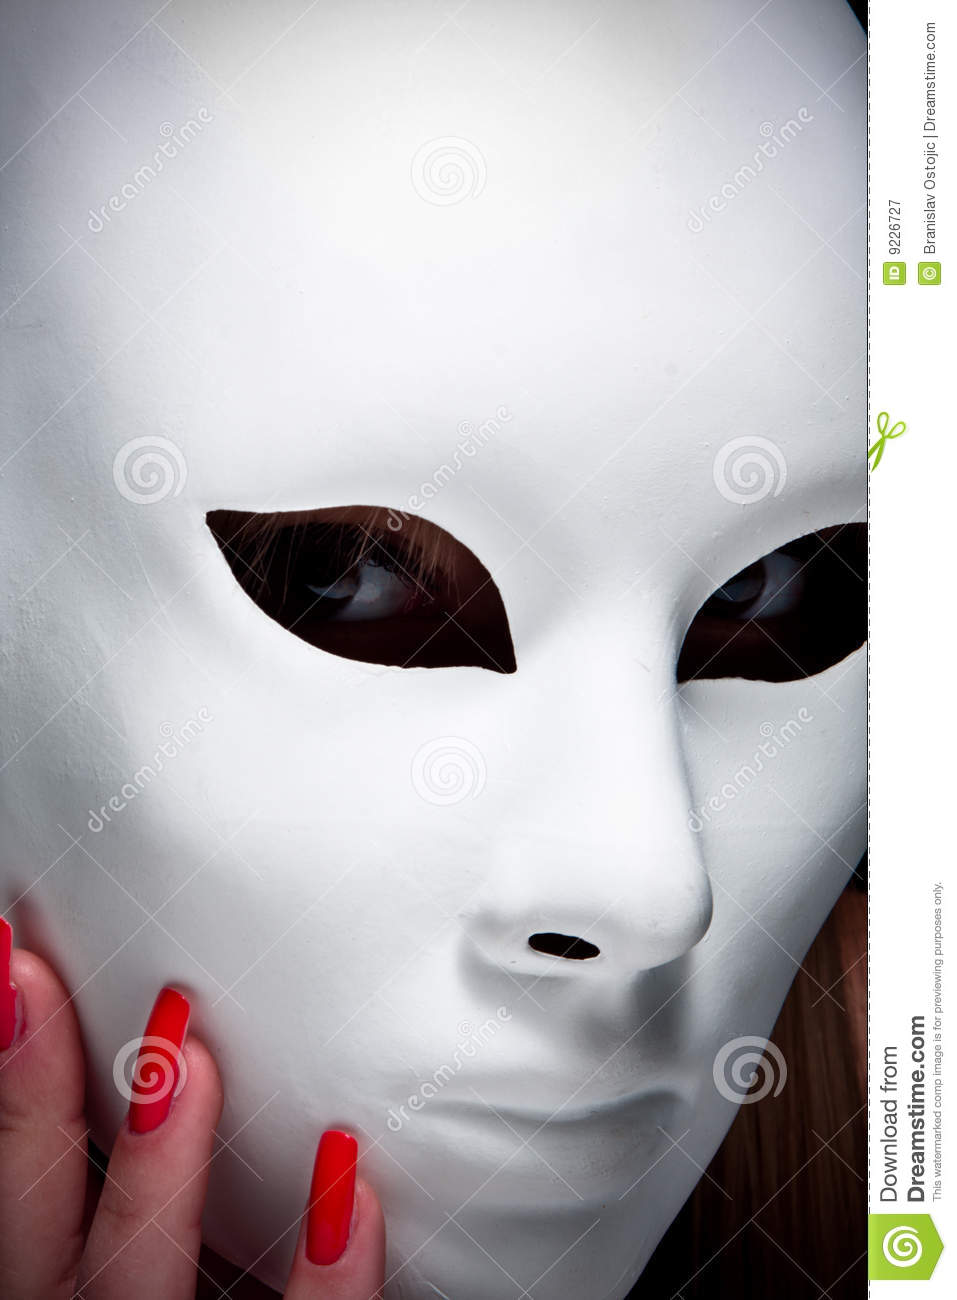 Mysterious Woman Under Mask Royalty Free Stock Photography Image 9226727